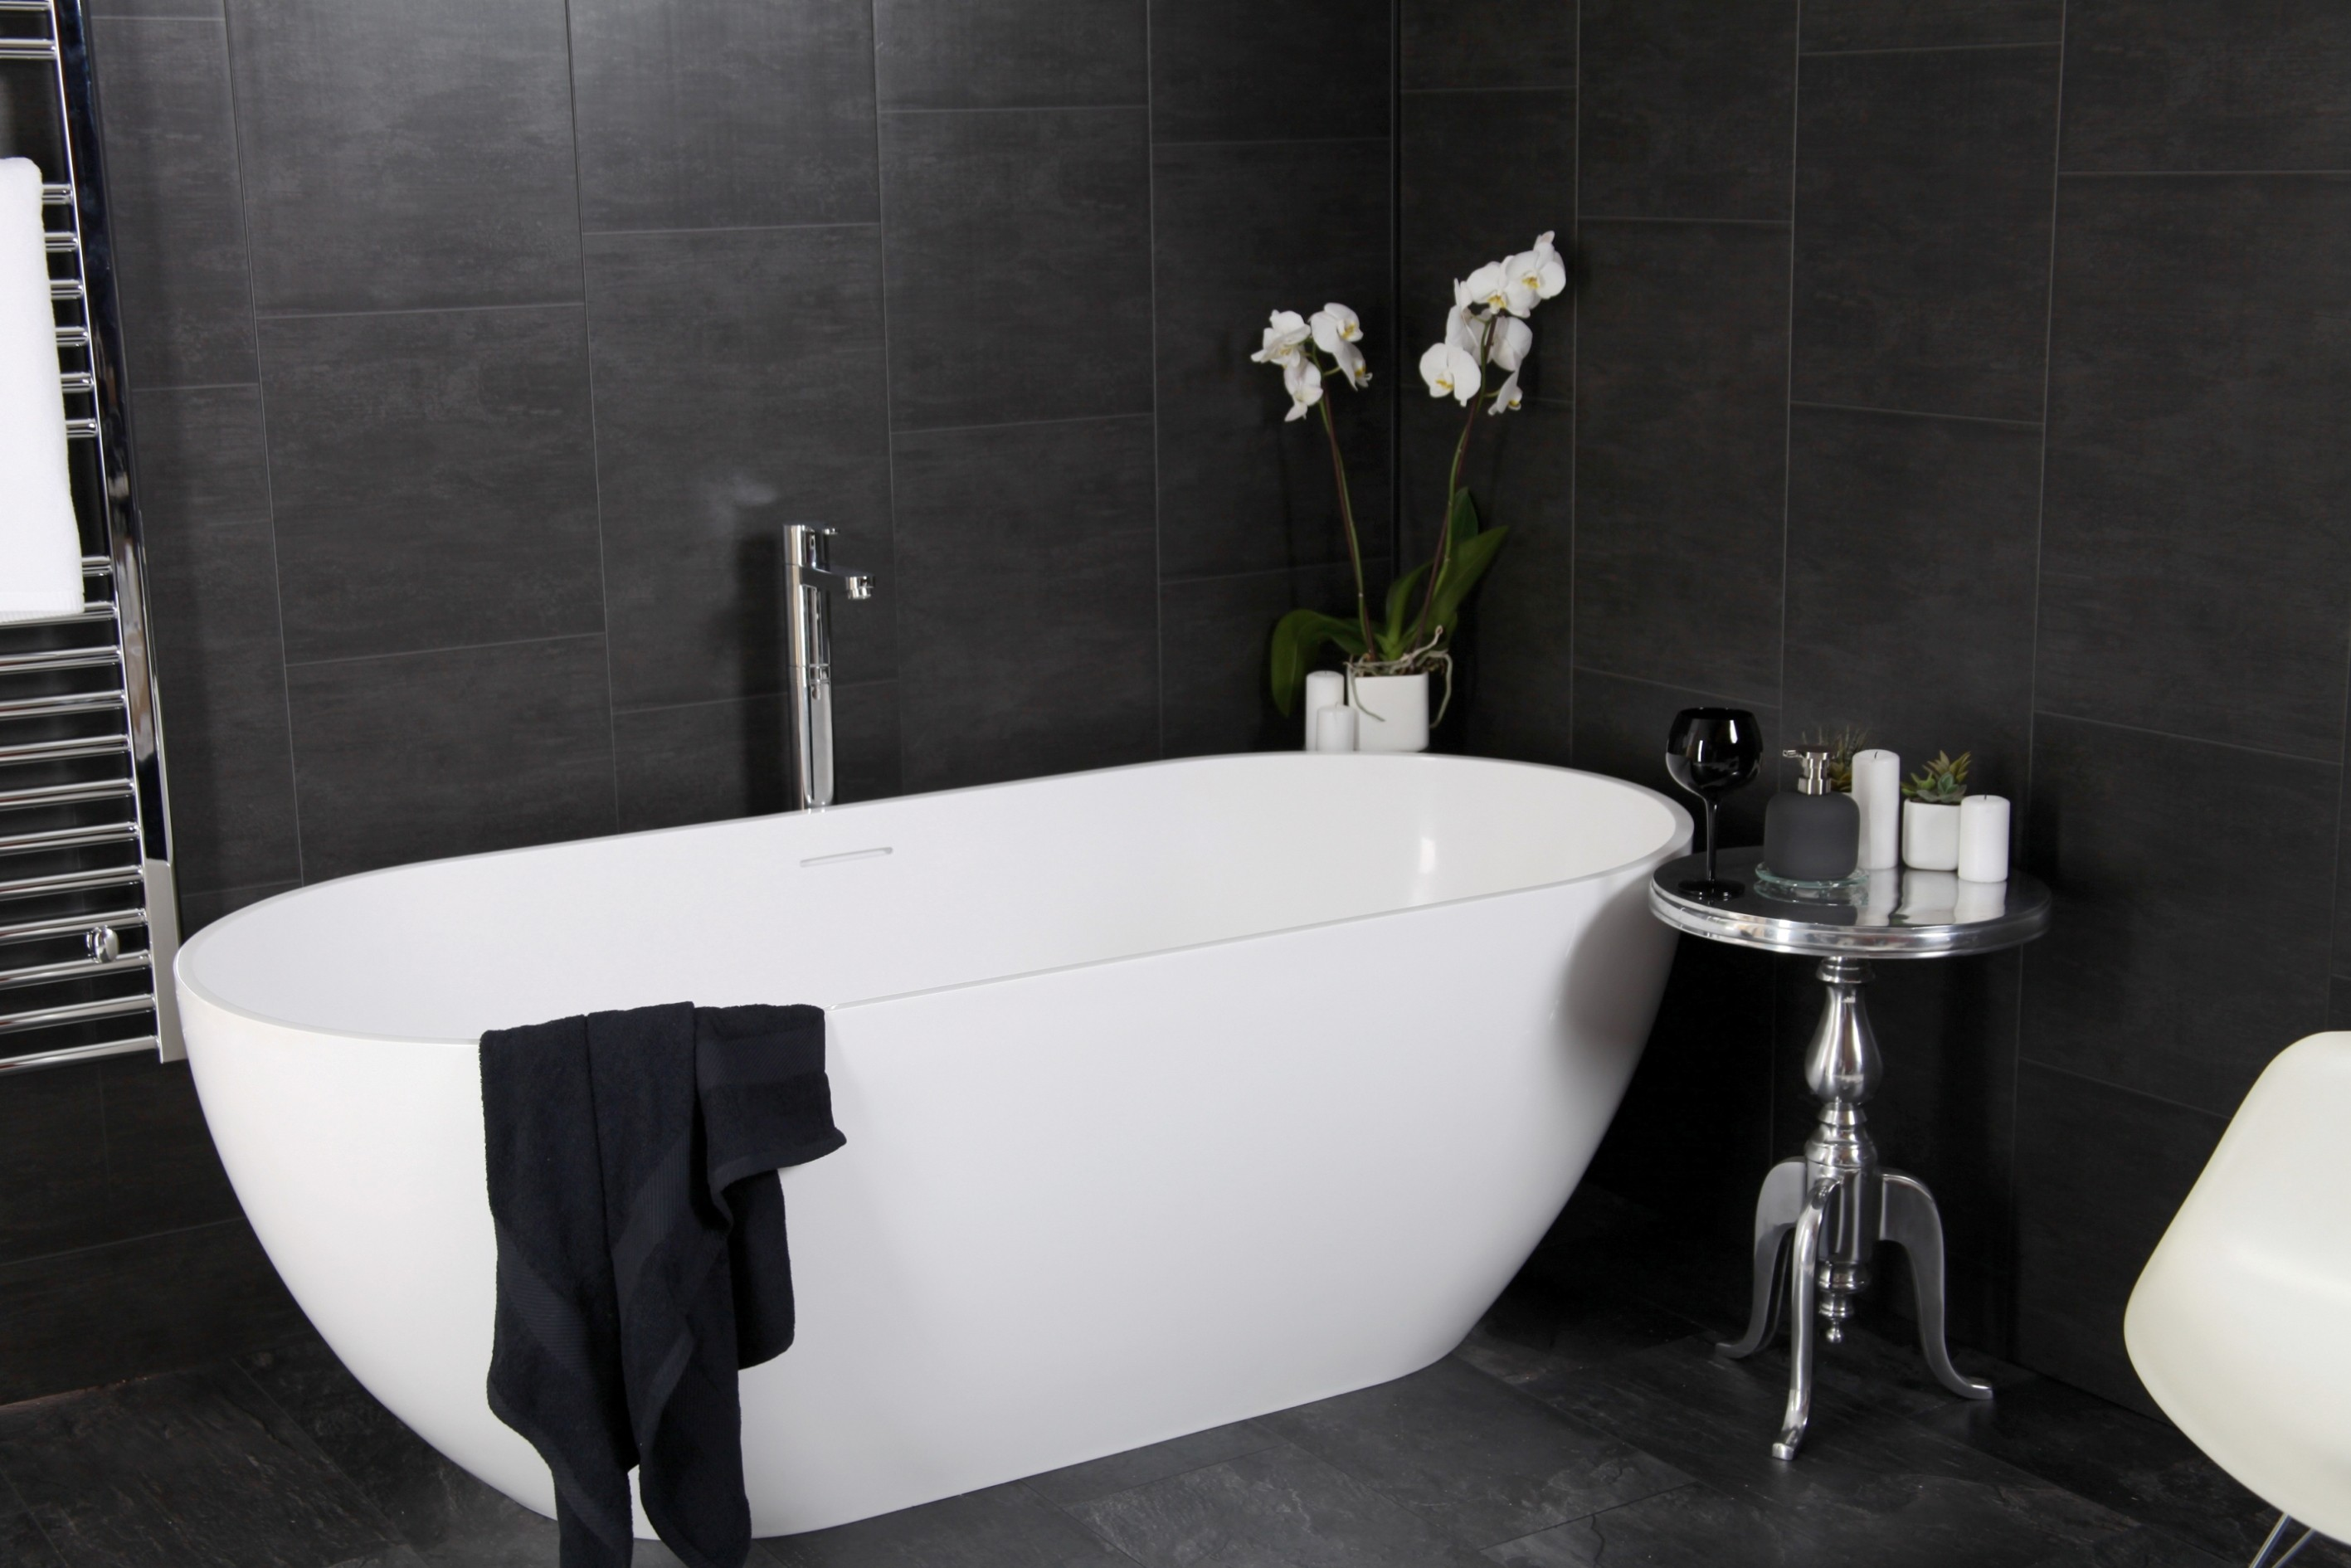 Fabulous 5 Easy Ways To Rejuvenate Your Bathroom Dbs Download Free Architecture Designs Scobabritishbridgeorg